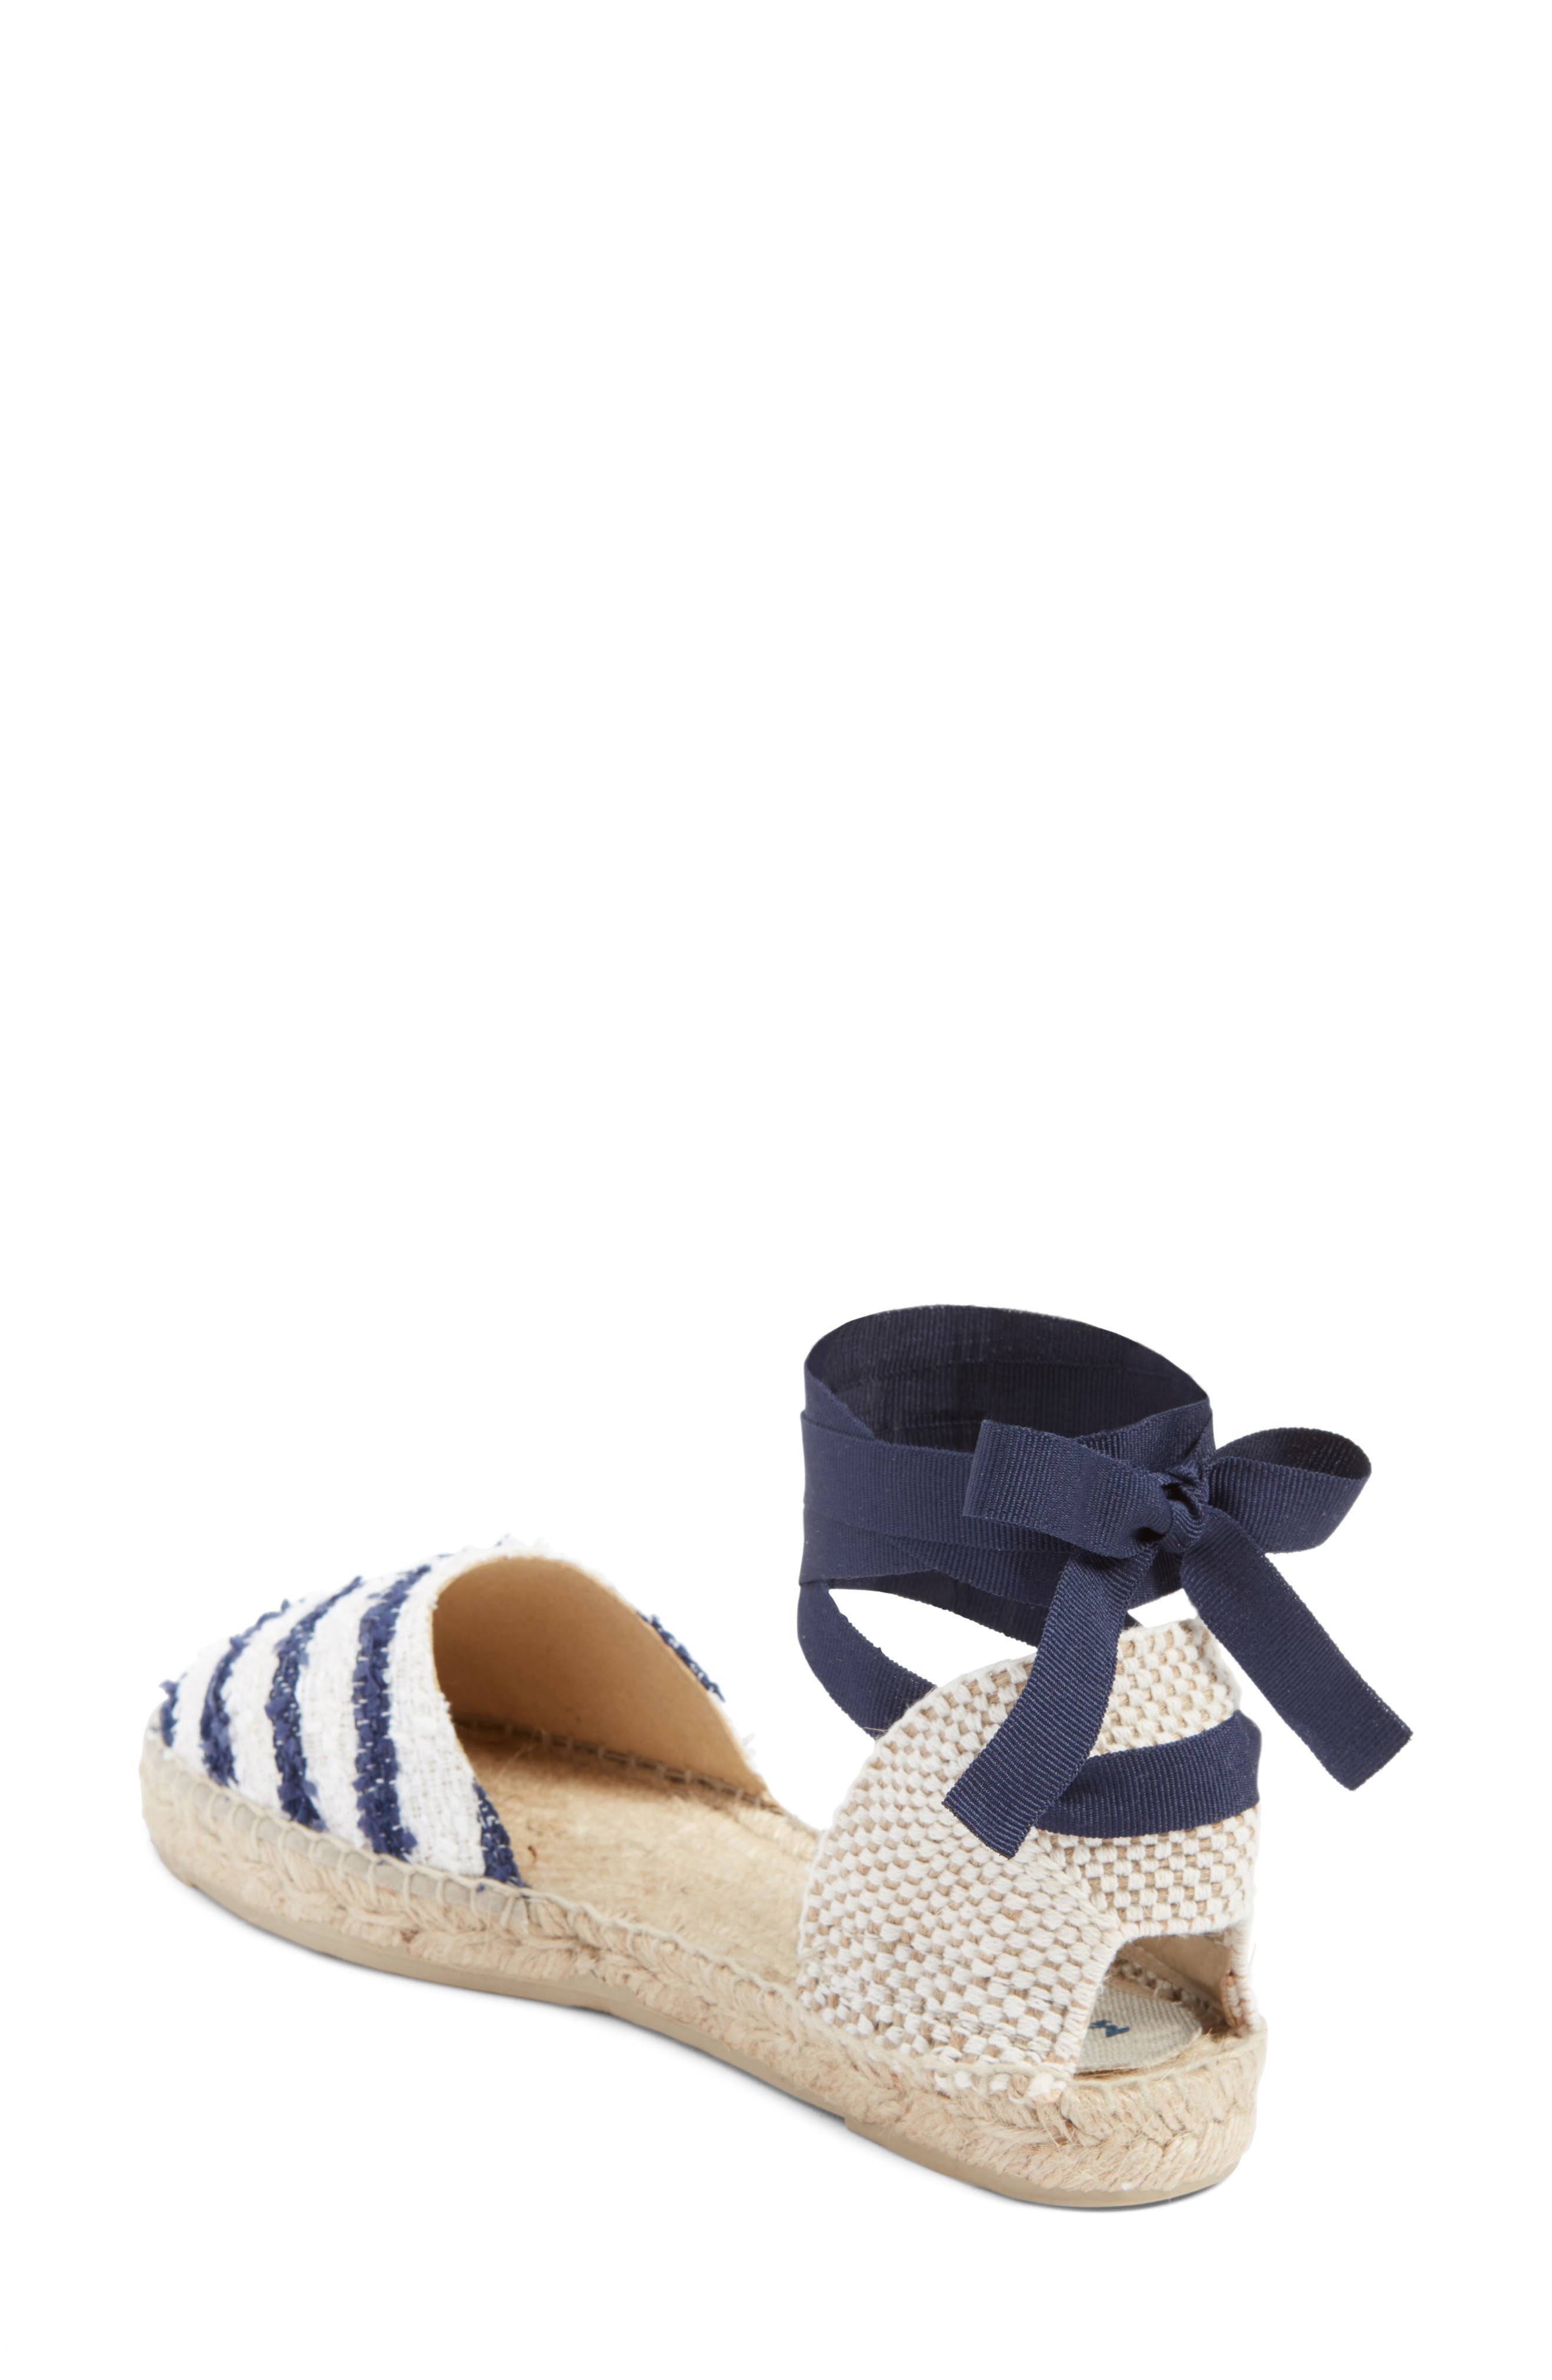 MANEBÍ Paris Lace-Up Espadrille Sandal,                             Alternate thumbnail 2, color,                             400